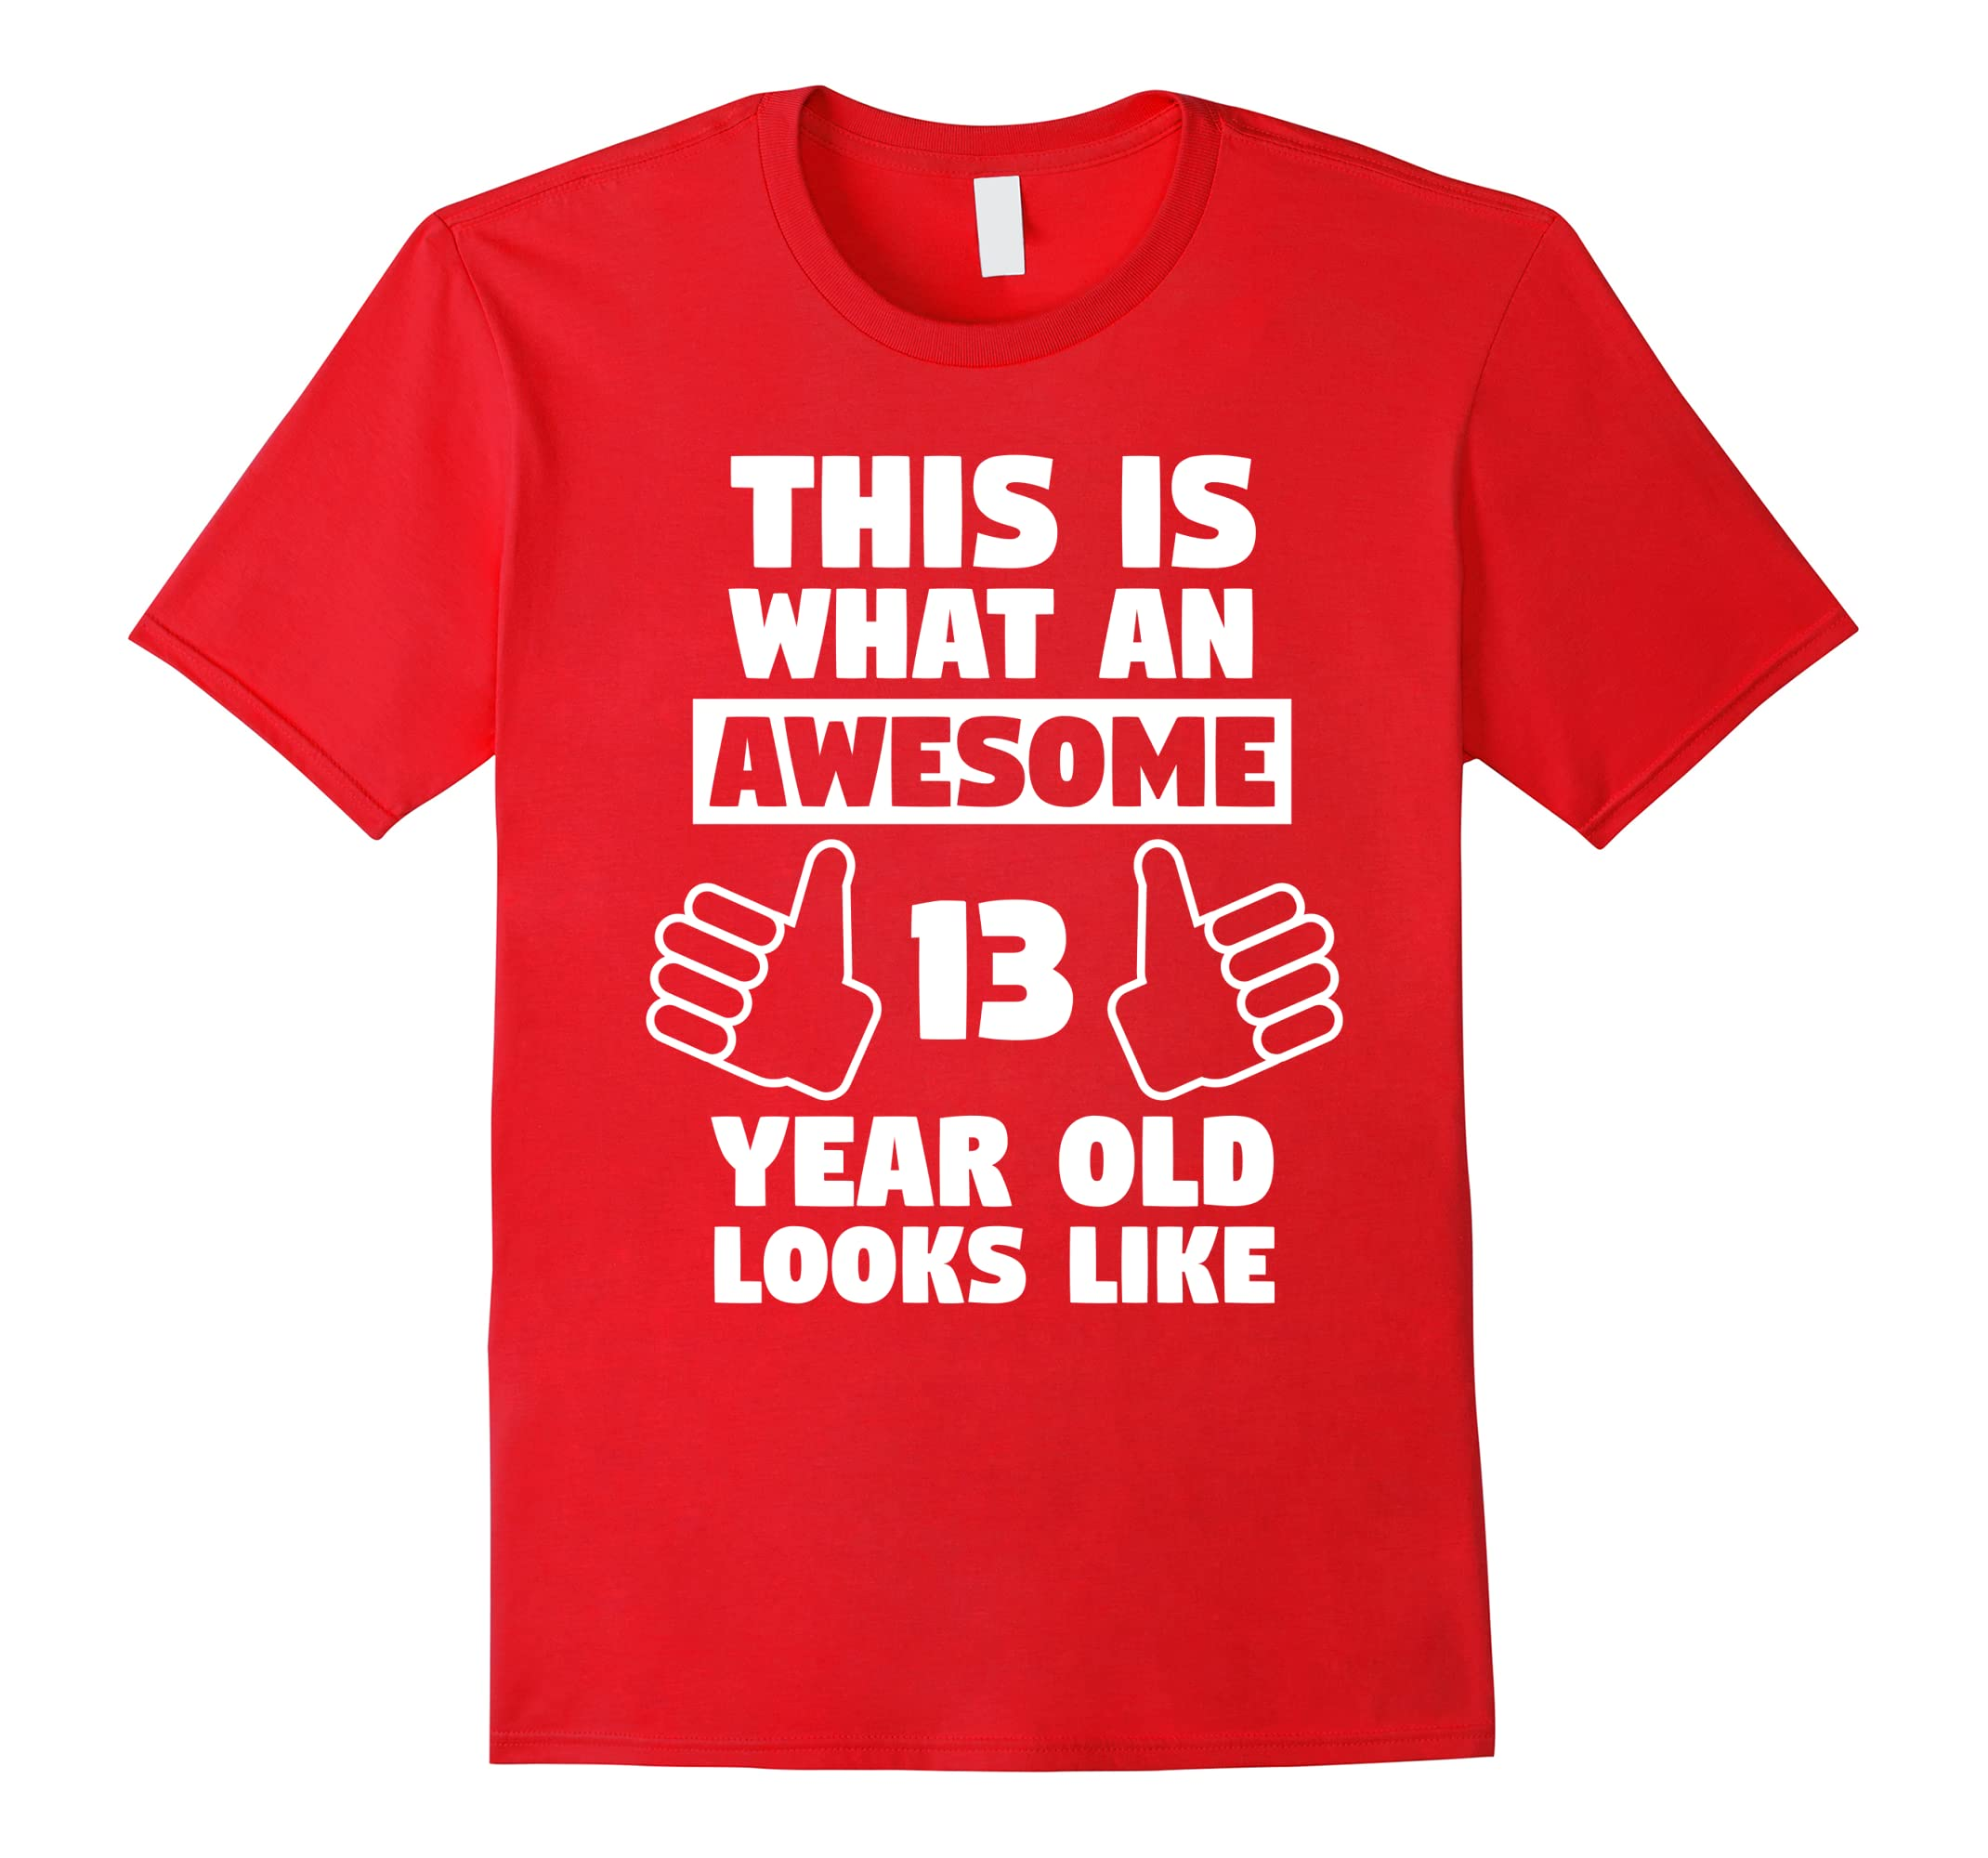 Awesome 13 Year Old Birthday Gift Funny 13th Shirt Ah My One Ahmyshirt